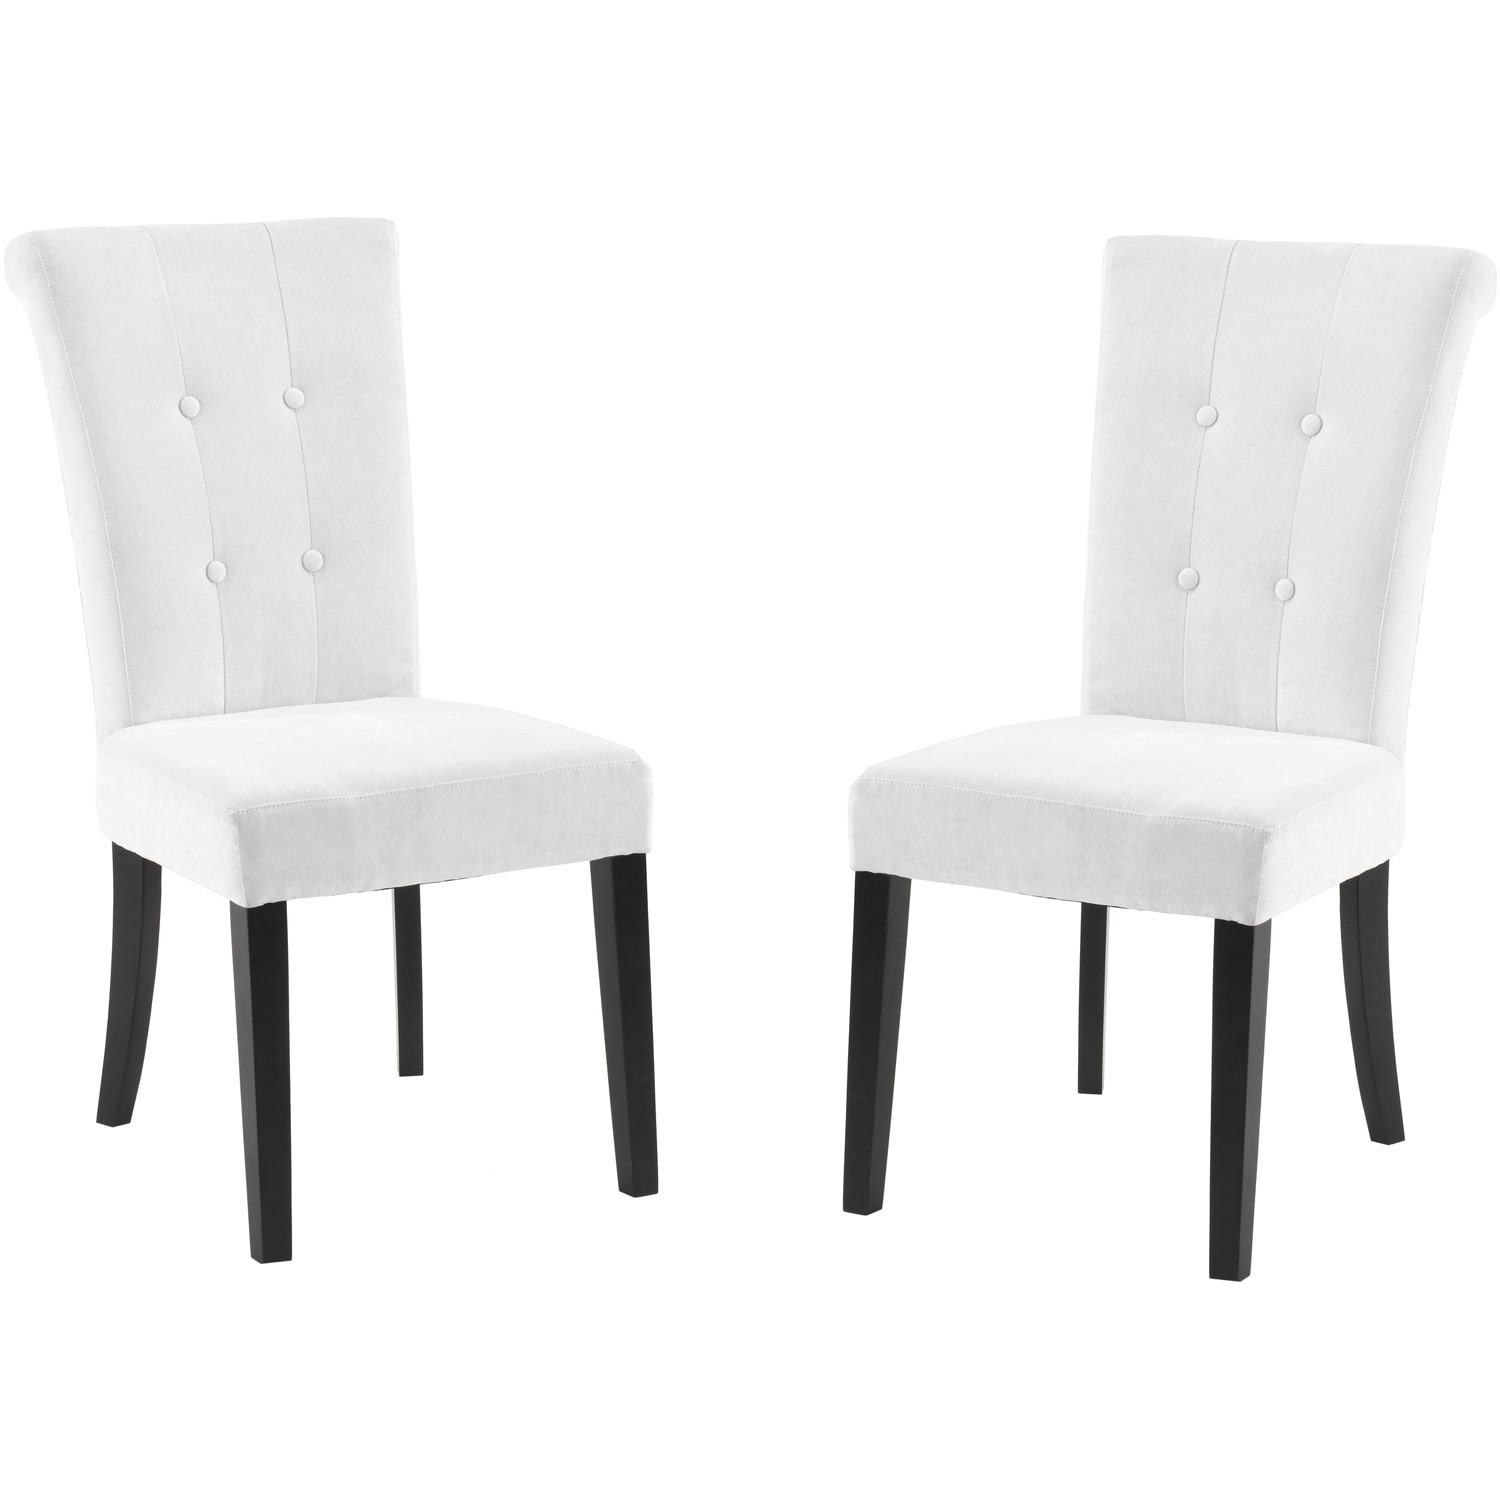 White Fabric Dining Chairs Tufted Off White Fabric Dining Chair Set Of 2